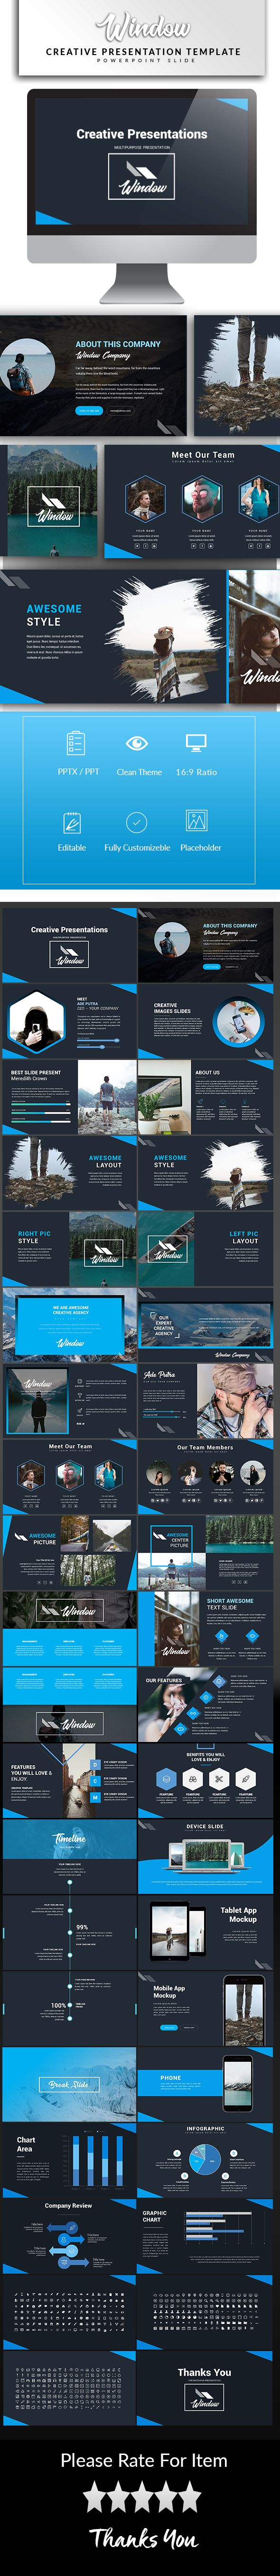 Window - Powerpoint Template